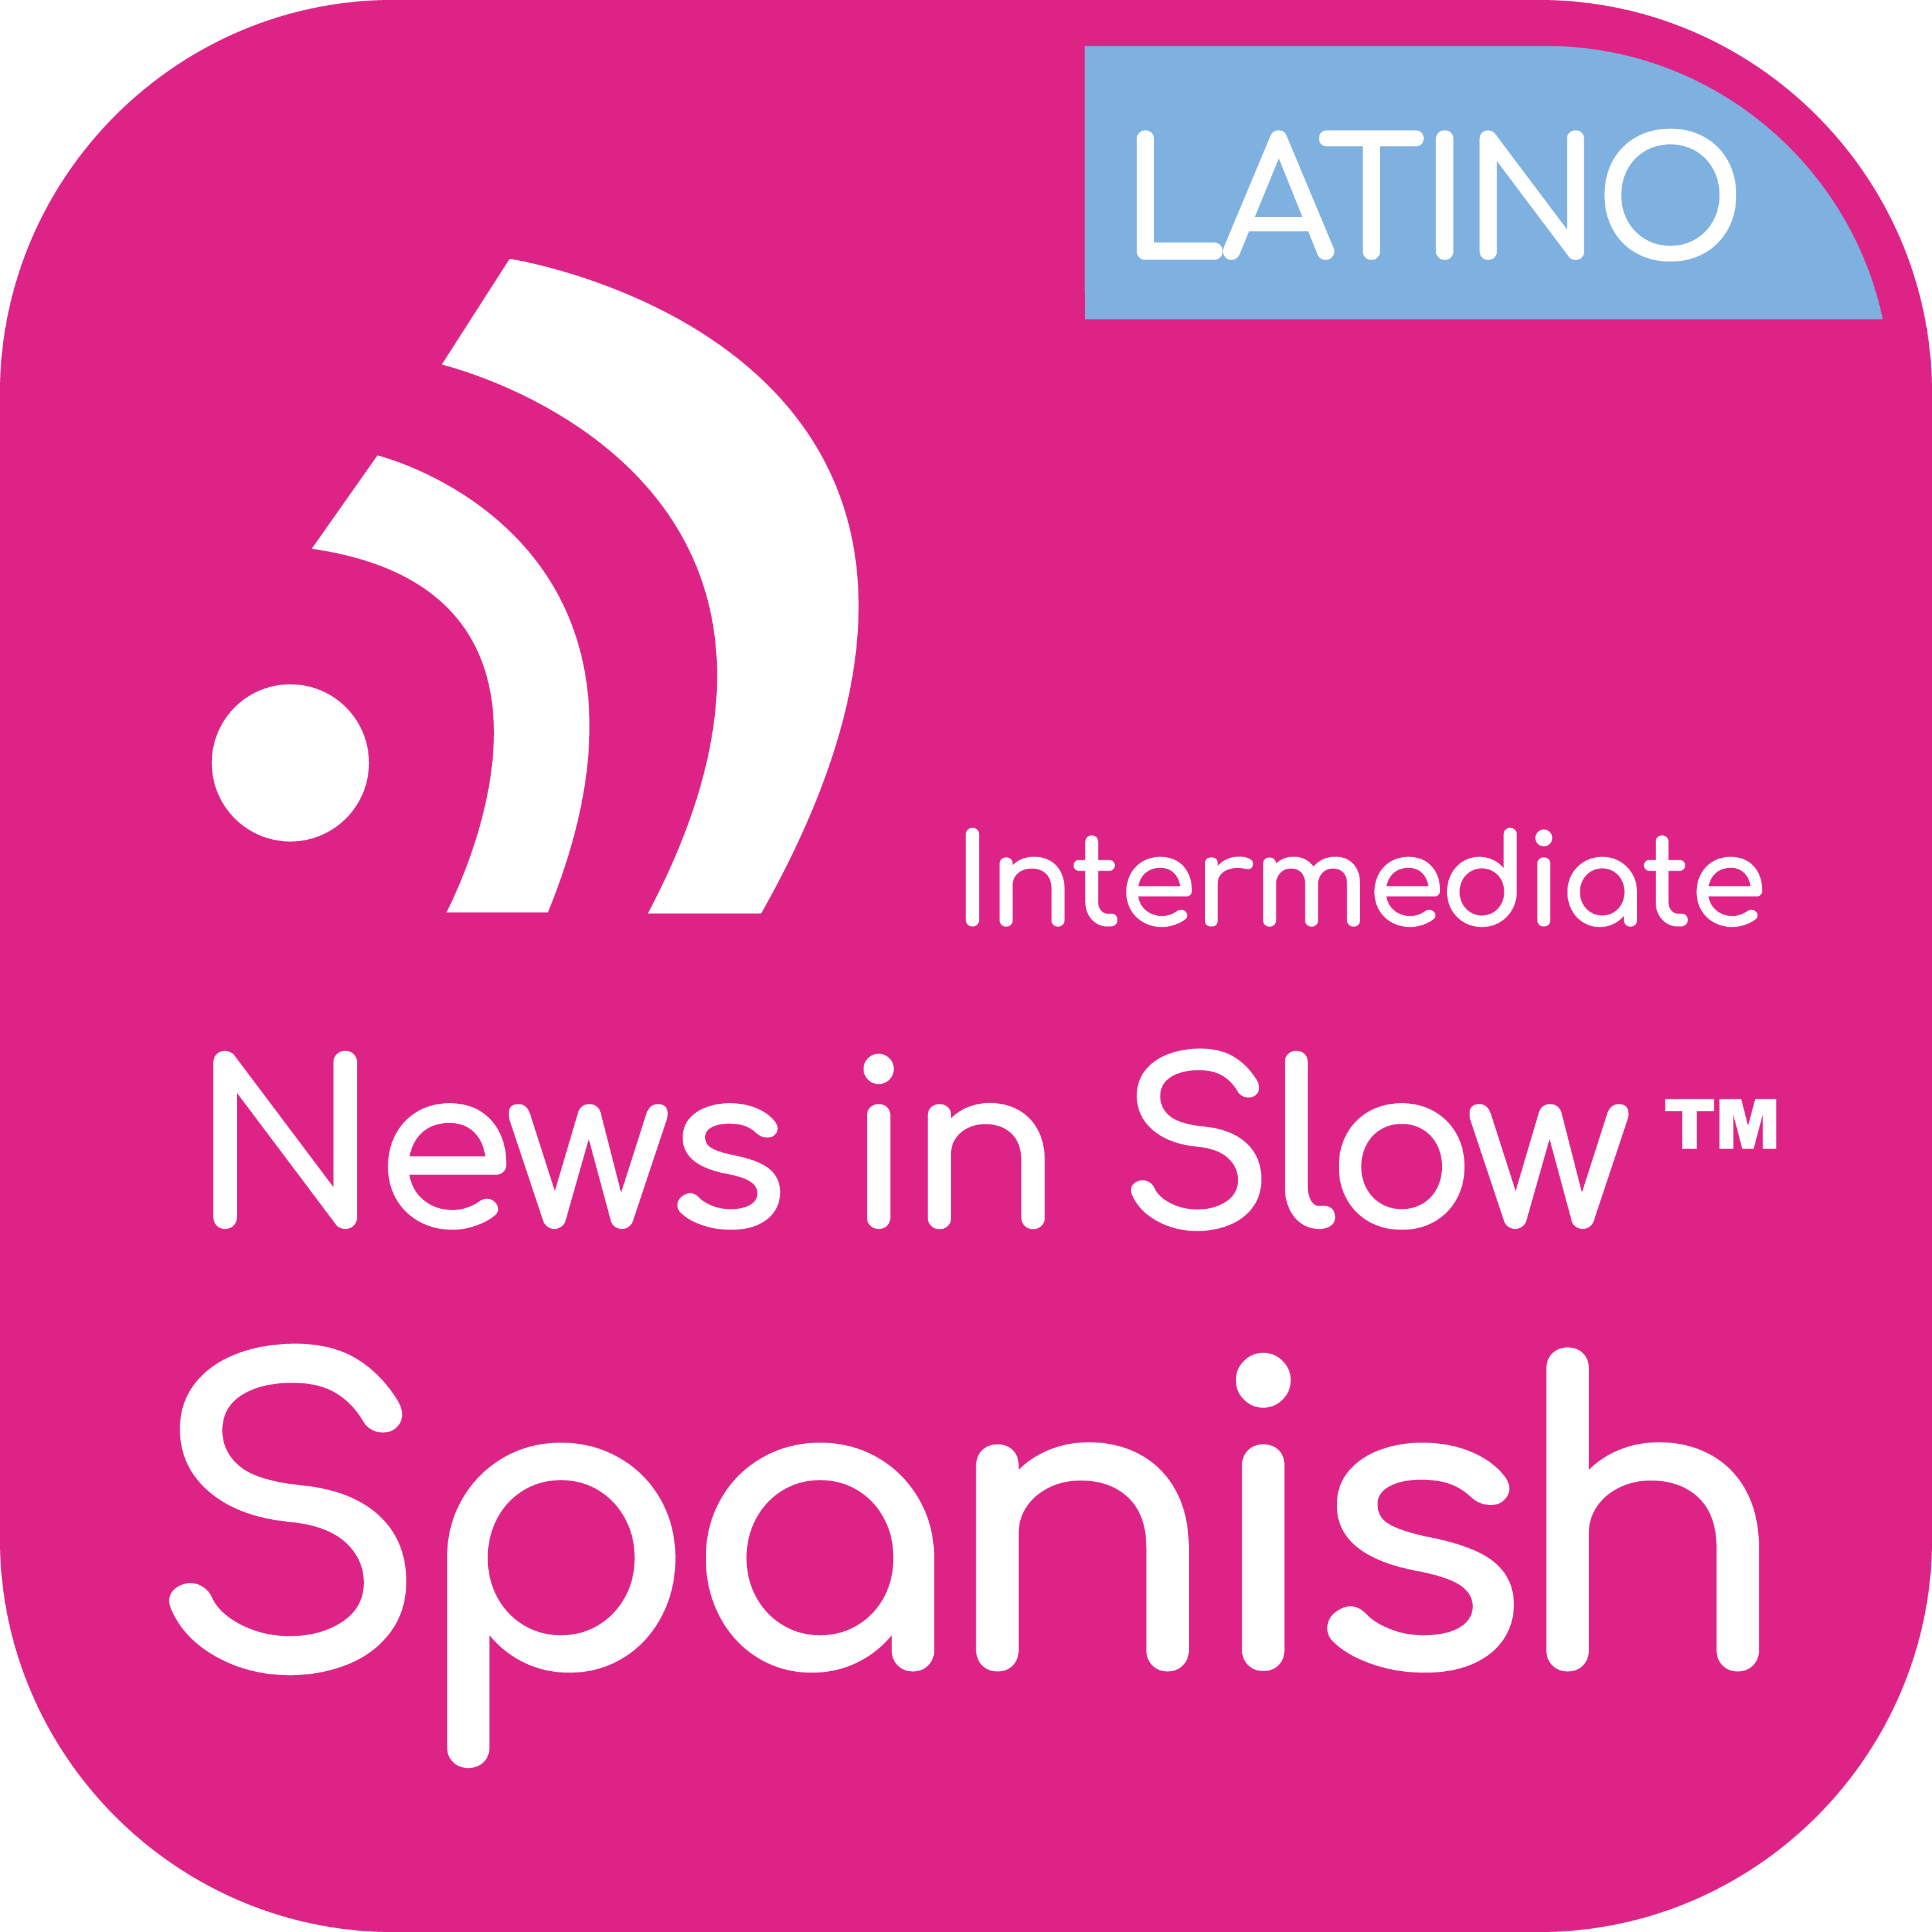 News In Slow Spanish Latino #413 - Spanish Expressions, News, and Grammar